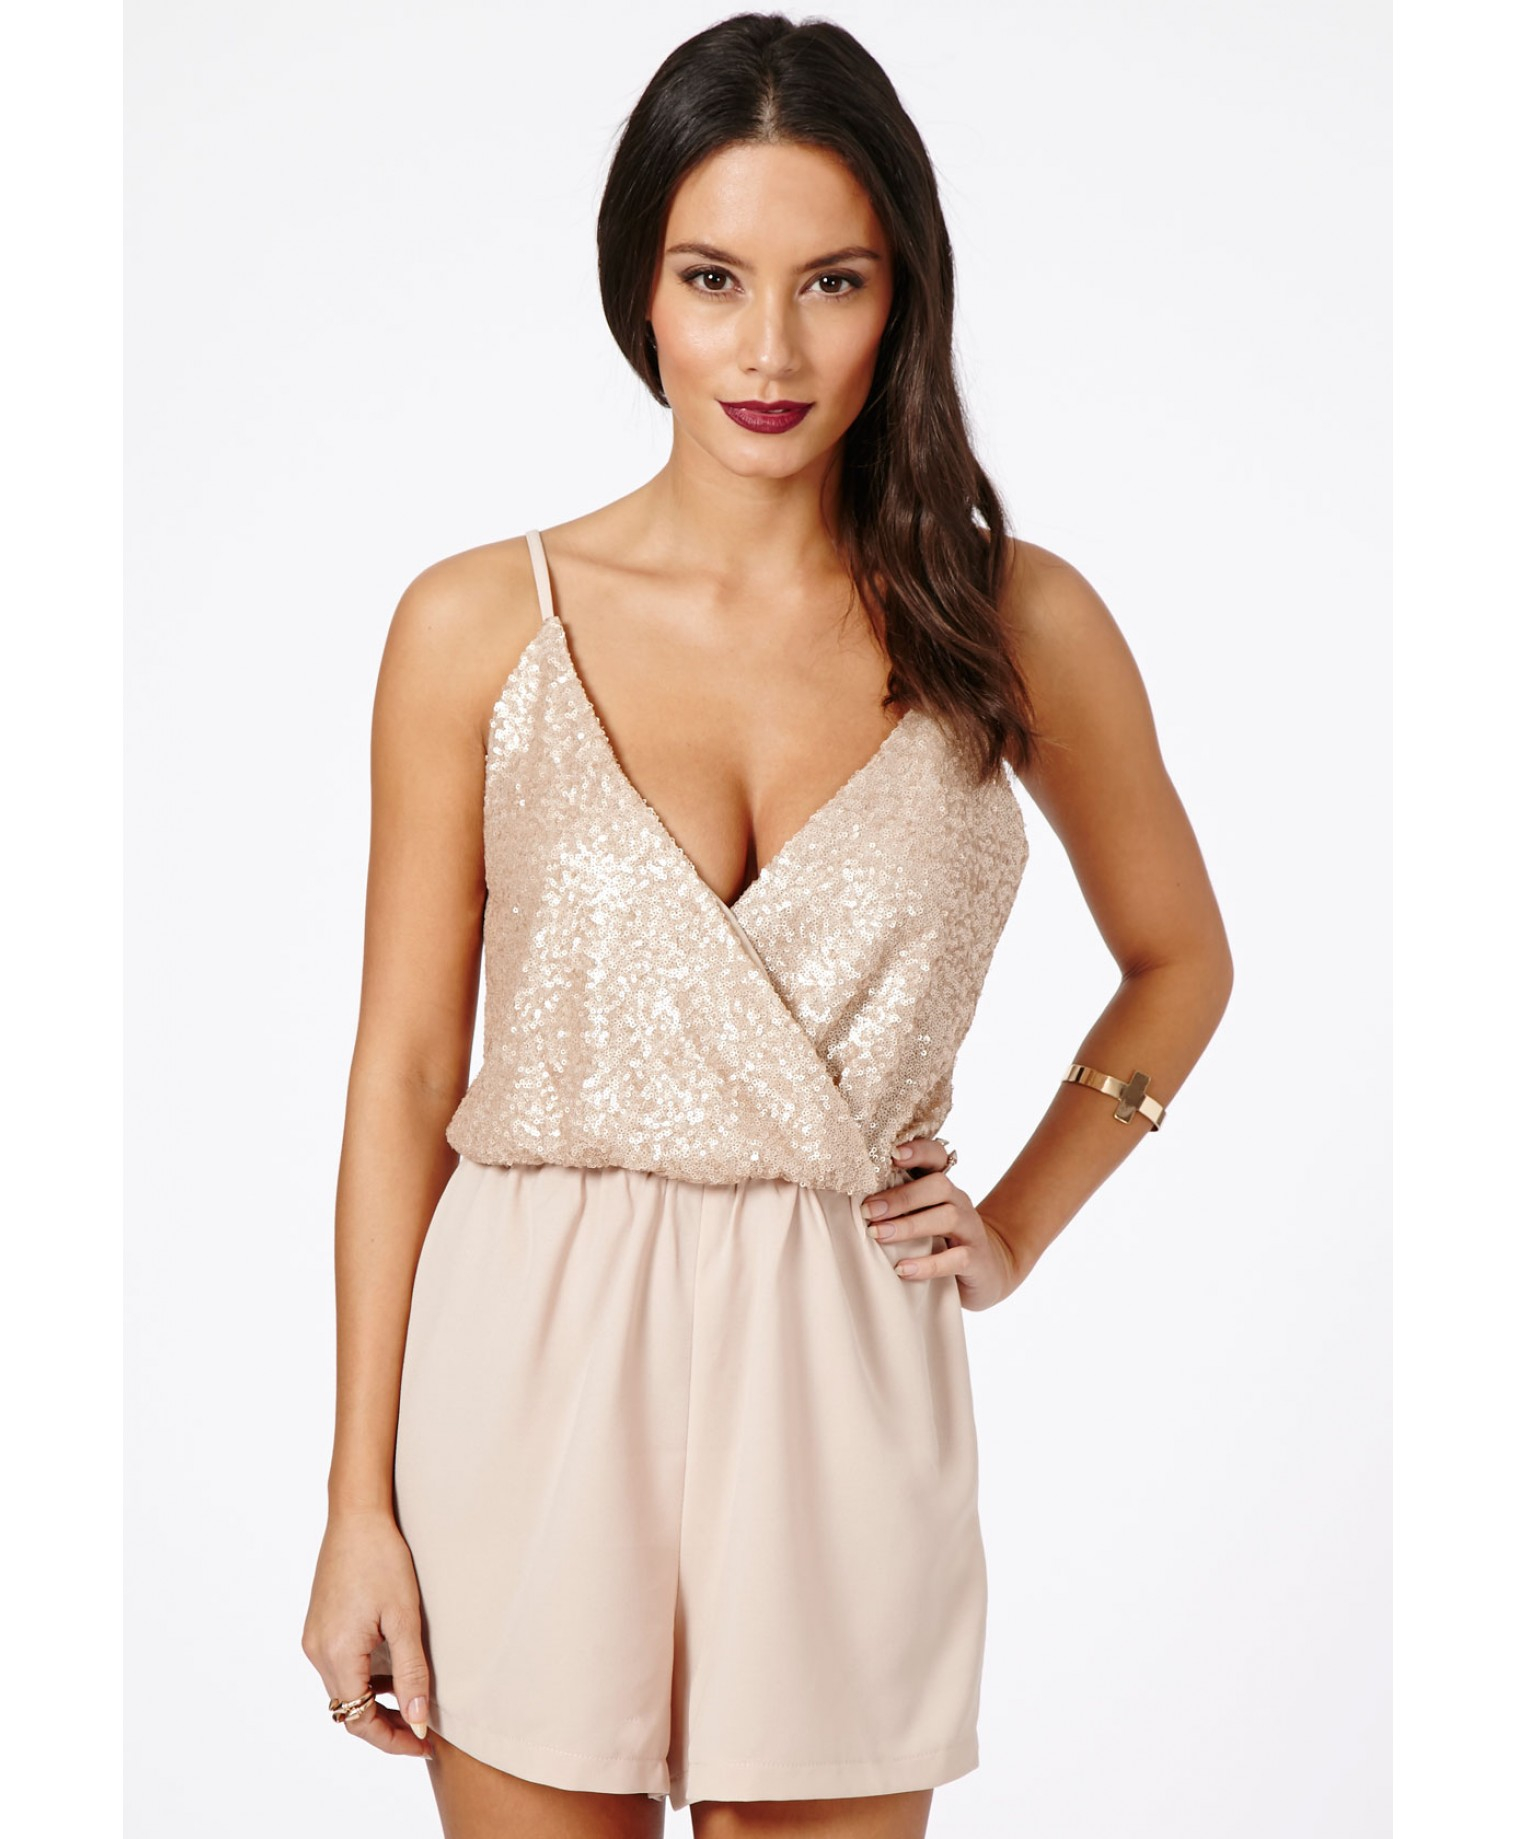 fabe889dba Missguided Alix Sequin Strappy Playsuit in Nude in Natural - Lyst